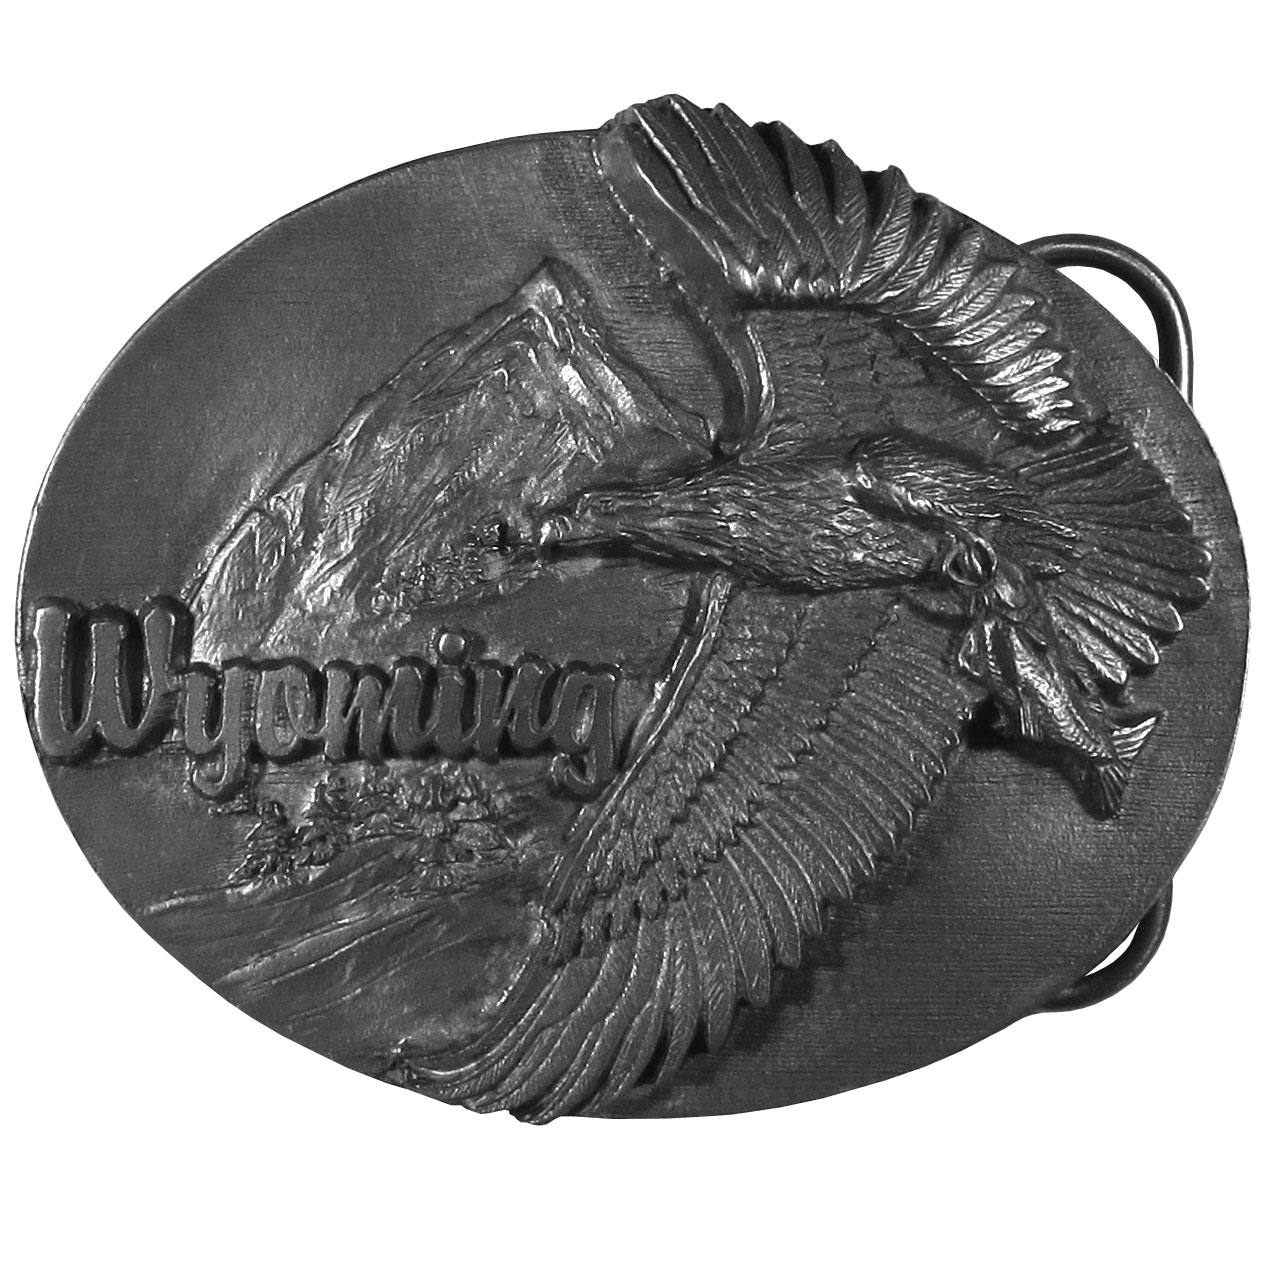 "Wyoming Eagle  Antiqued Belt Buckle - ""This belt buckle celebrates the state of Wyoming!  """"Wyoming"""" is written in bold across the top.  There is an eagle soaring through the sky with a fish in it's claws.  In the background are a mountain and trees.  Siskiyou's unique buckle designs often become collector's items and are unequaled with the best craftsmanship."""